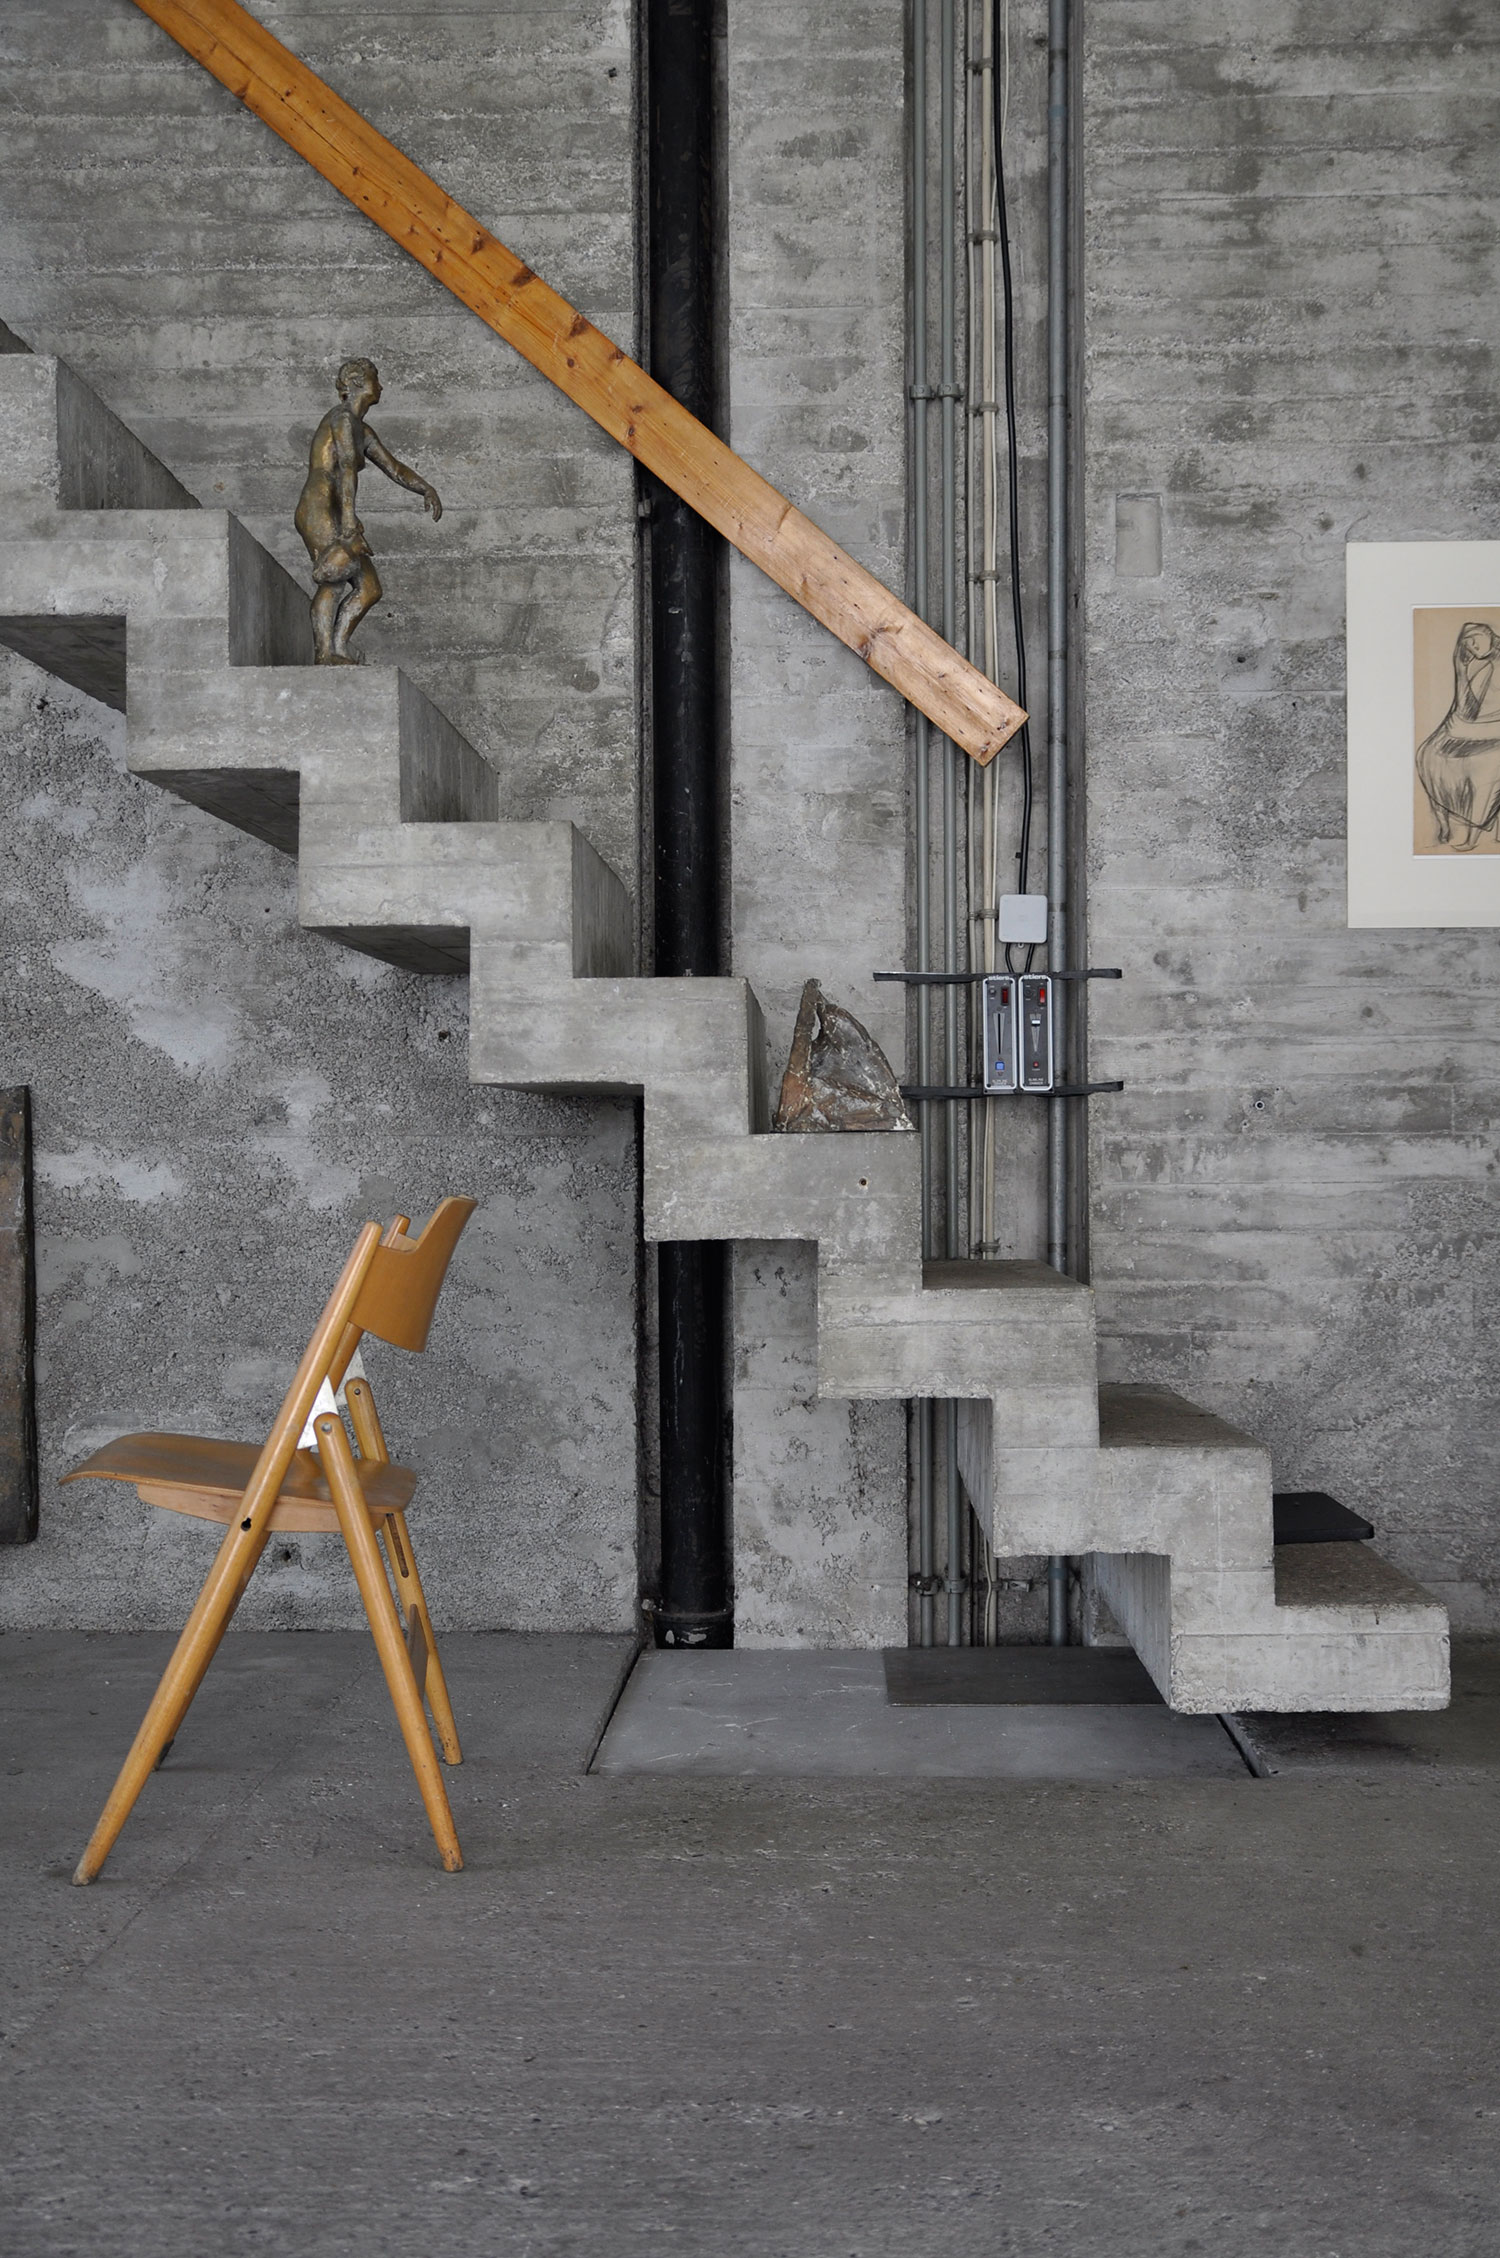 atelier-hermann-rosa-everythingwithatwist-13